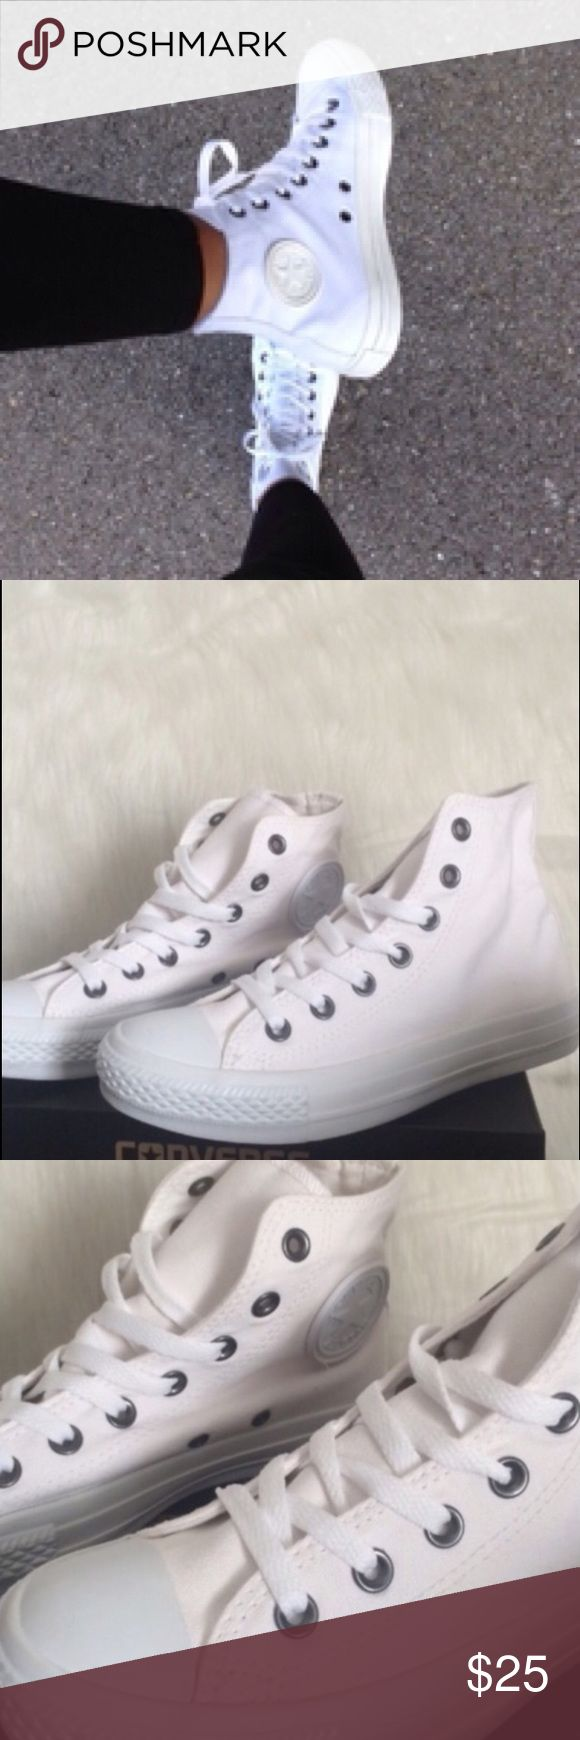 🛍1 HOUR SALE! CONVERSE WHITE WOMENS SHOES SIZE 7 No box Converse Shoes Sneakers